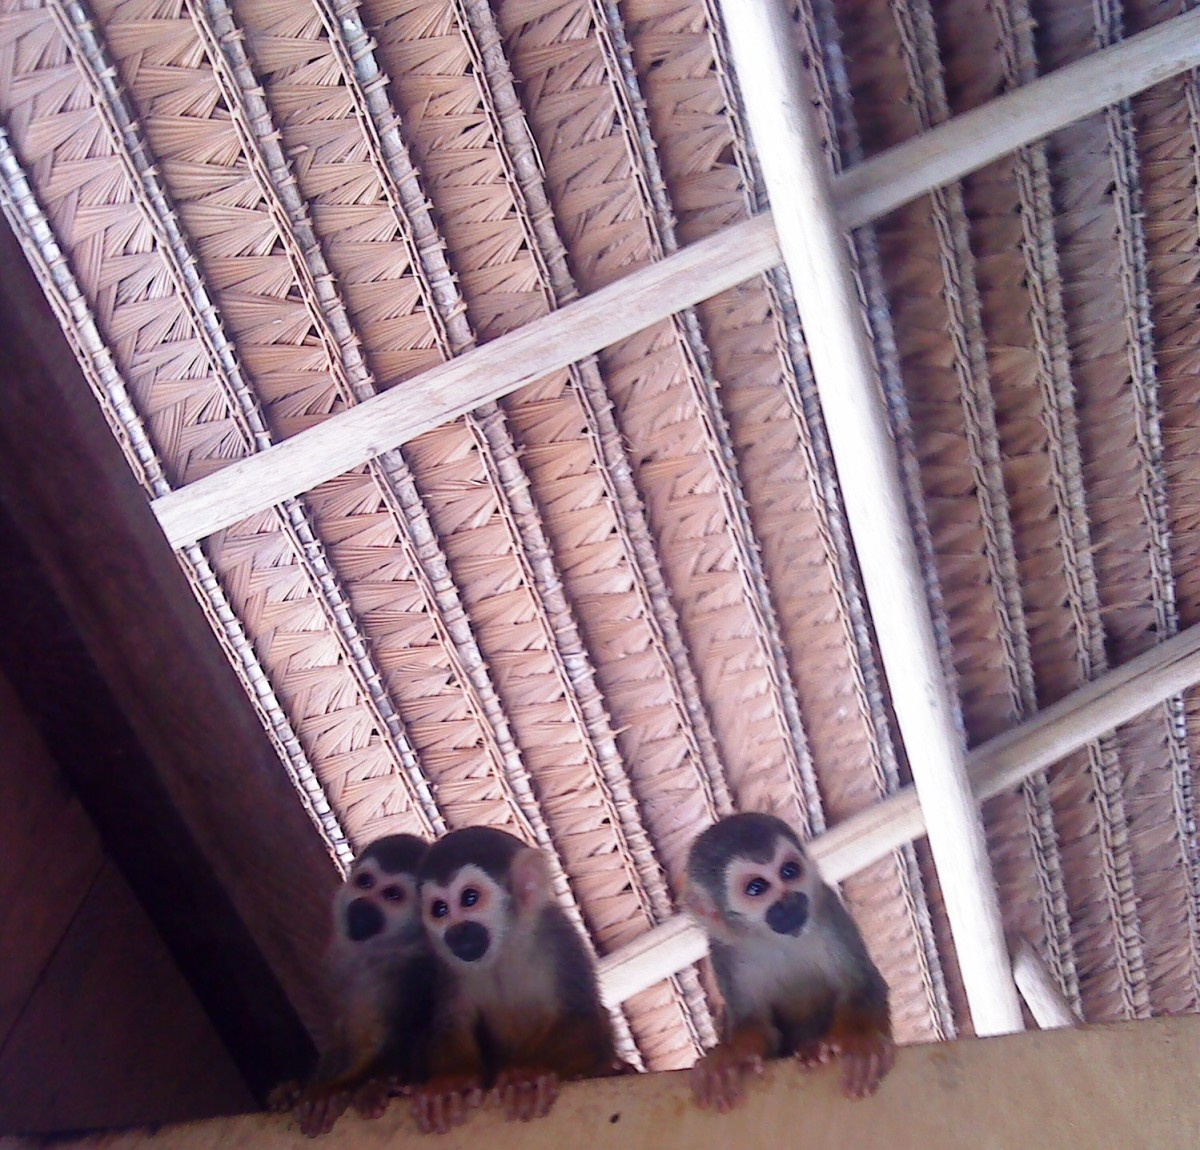 Three Amazon Monkeys Waiting for the Boat